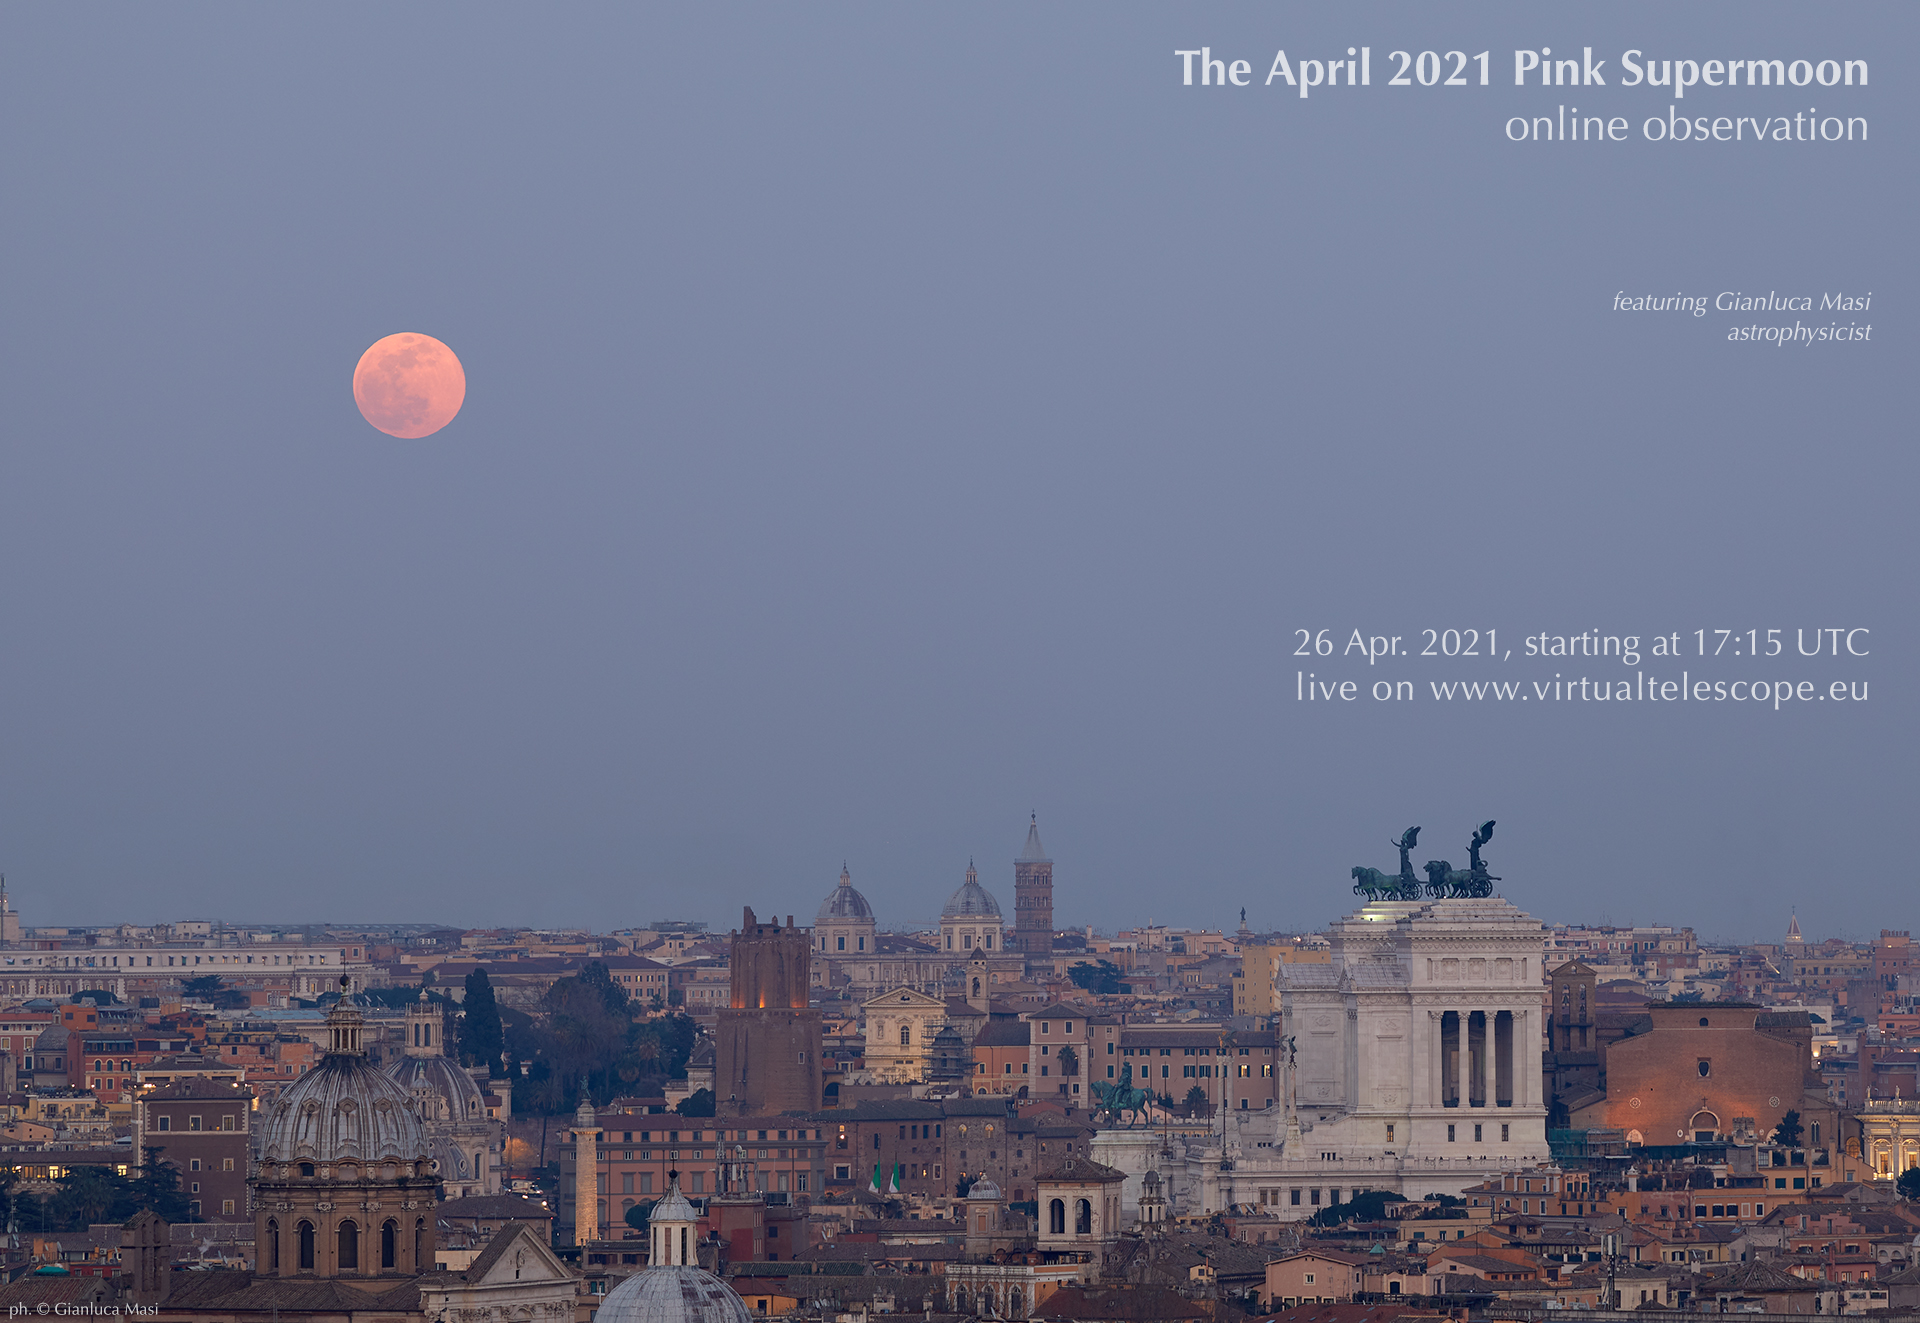 The April 2021 Pink Supermoon - poster of the event.